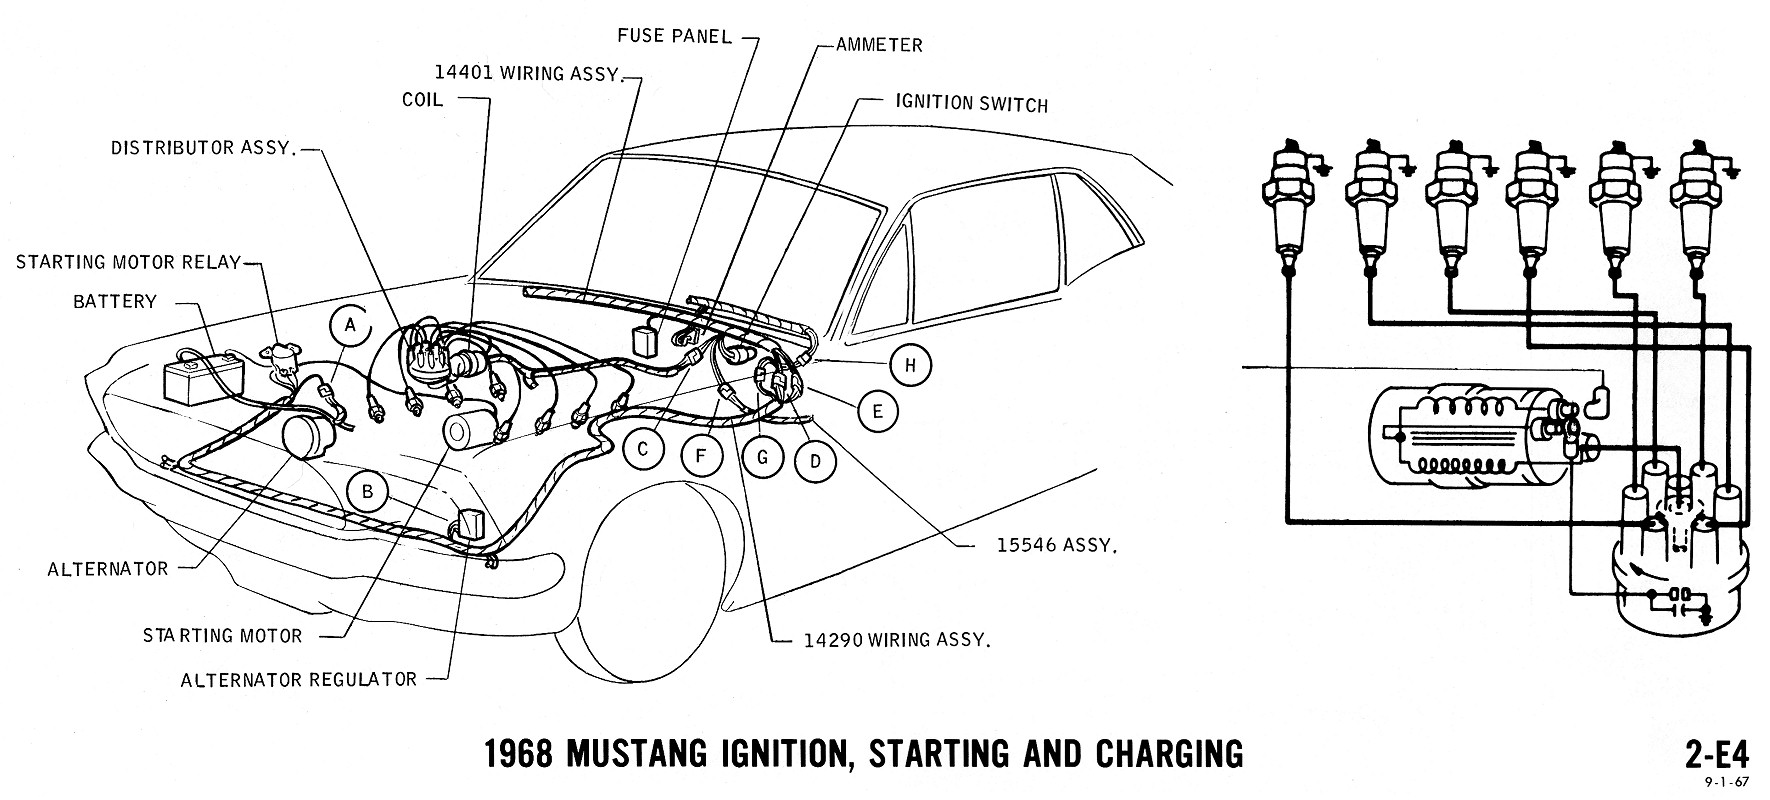 1968 mustang wiring diagrams and vacuum schematics average joe 7.3 ford alternator  wiring diagram 1968 mustang